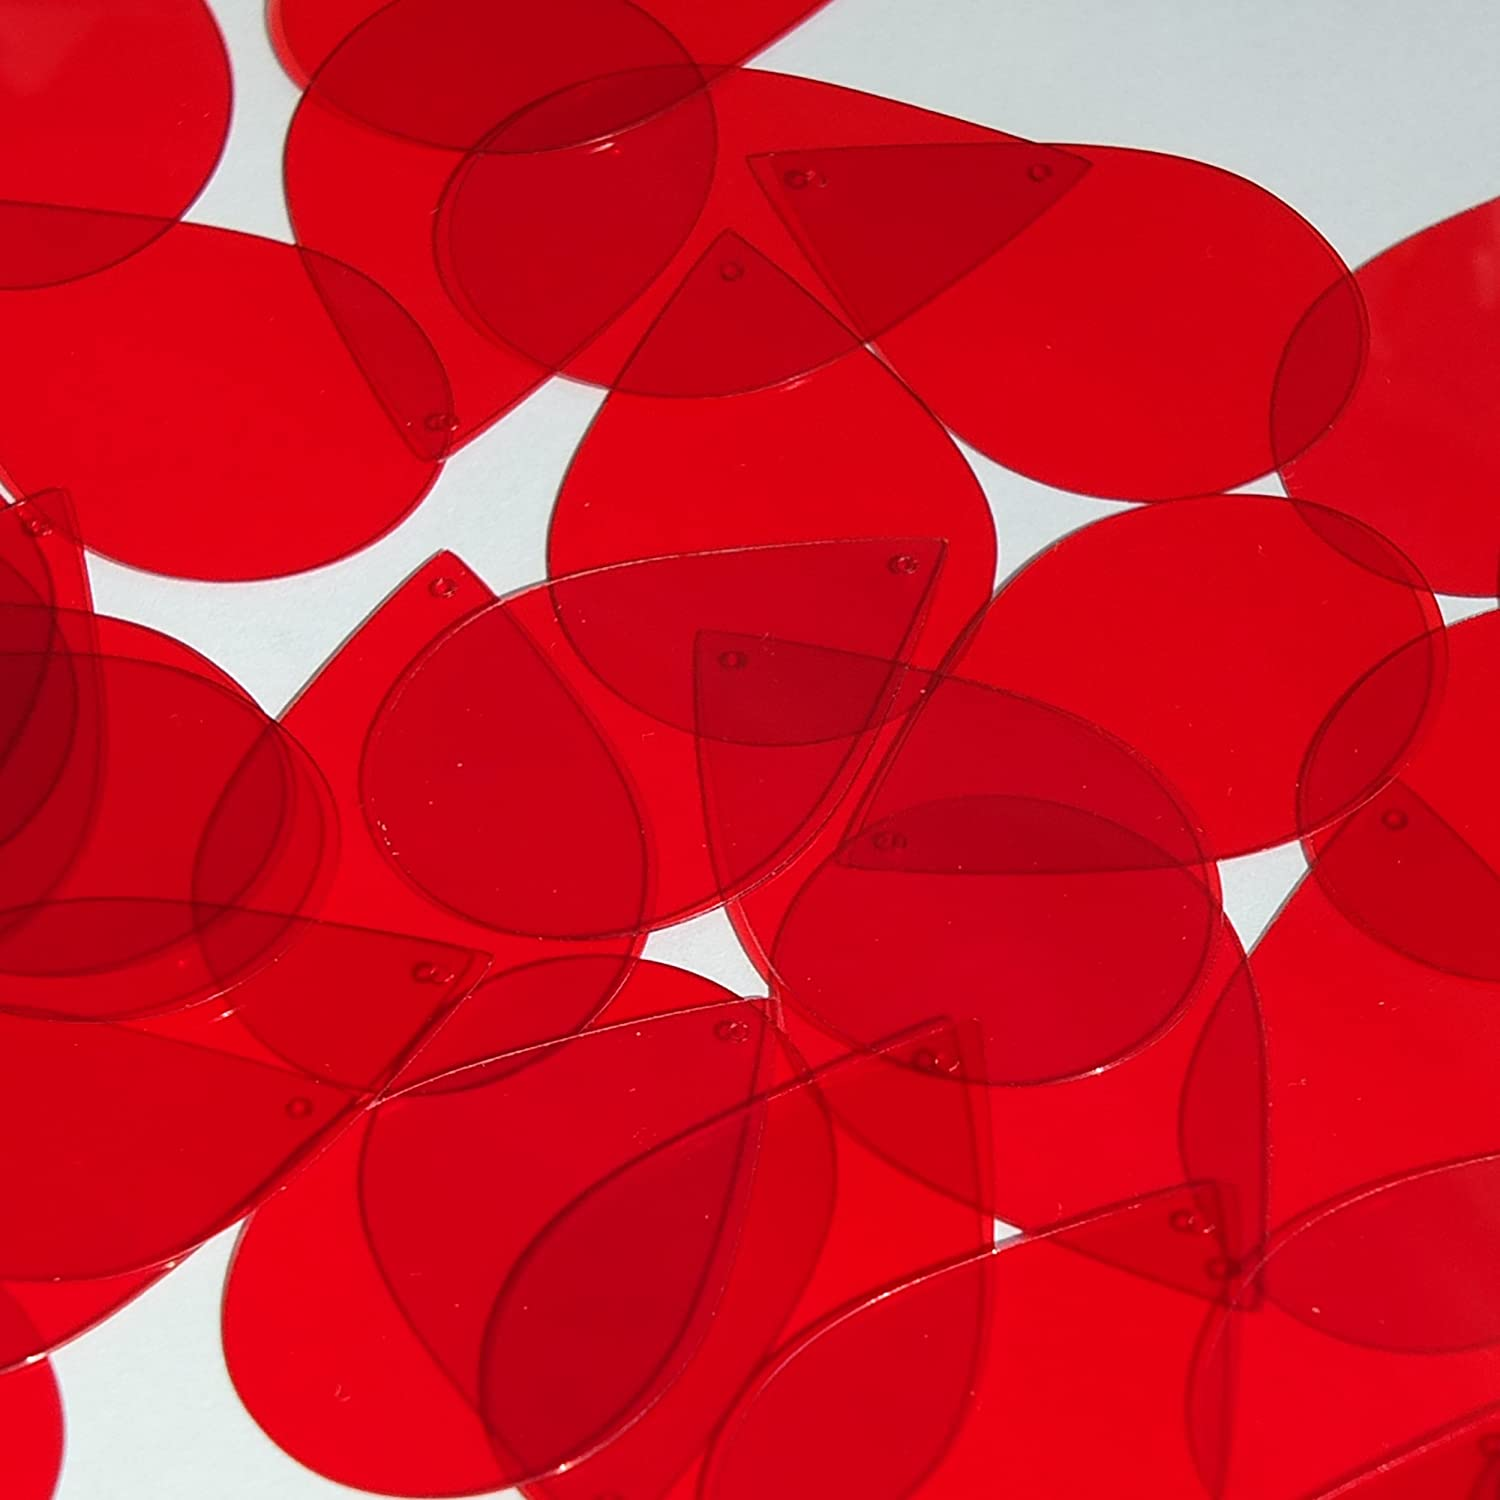 Teardrop Sequin 1.5 Red Transparent Glossy See-Thru Loose Couture Paillettes